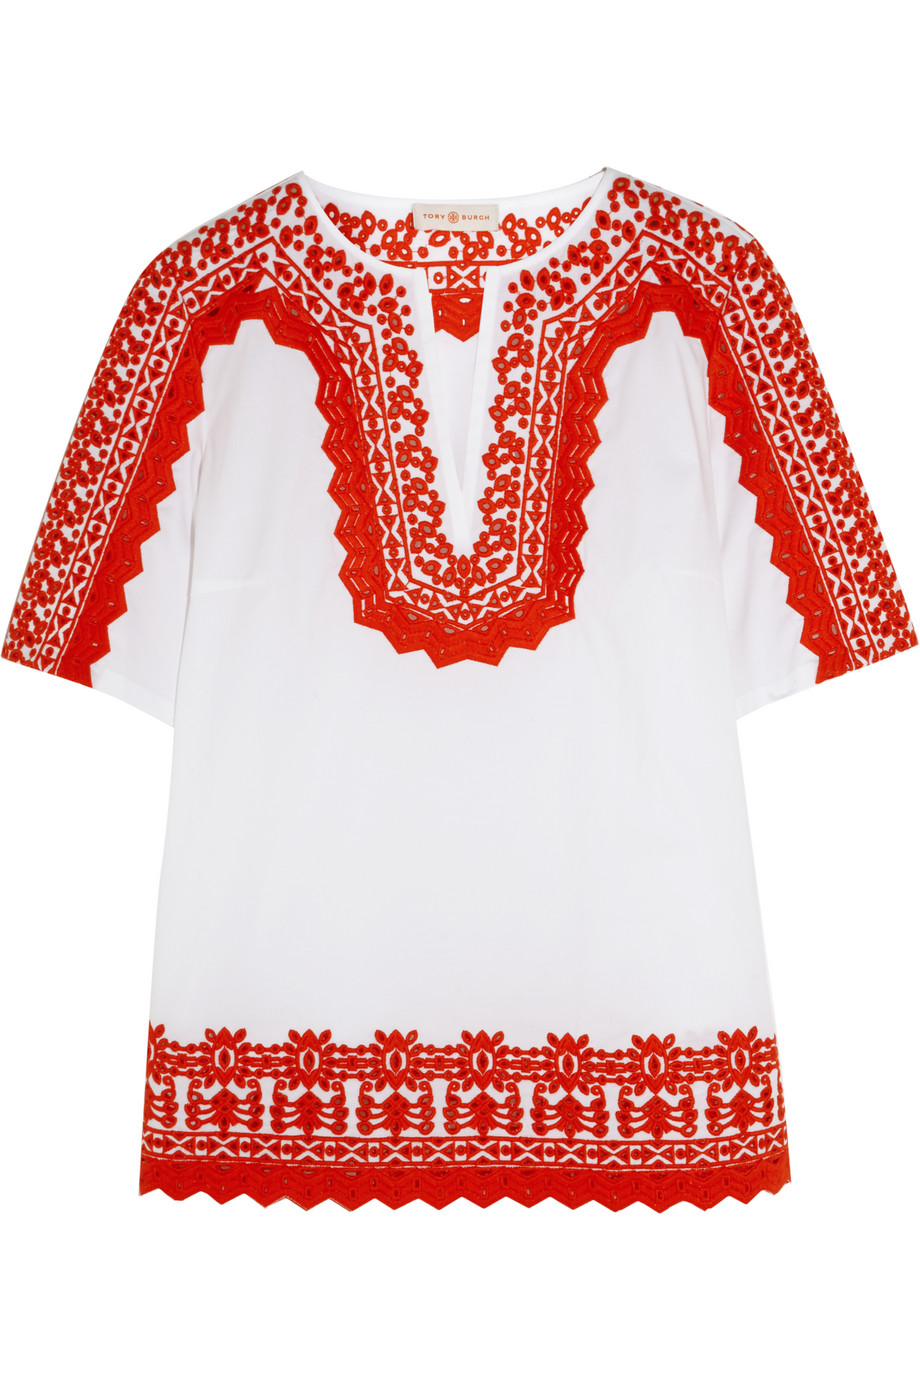 Tory Burch Isla Embroidered Stretch-Cotton Poplin Tunic, White/Red, Women's, Size: 6